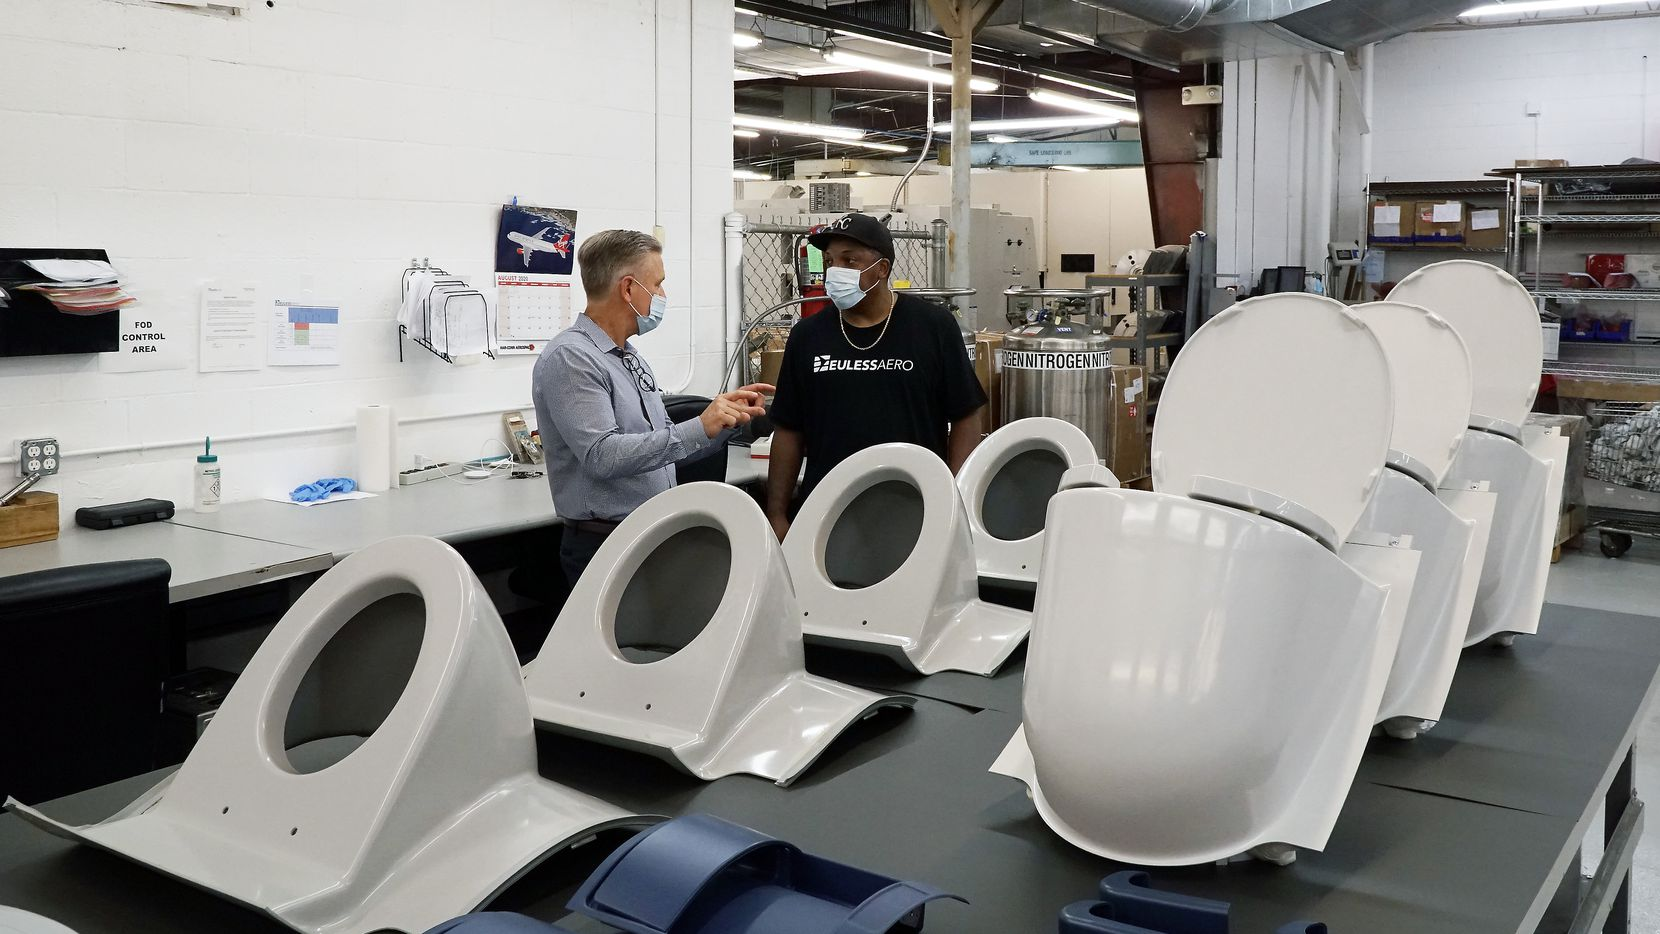 Aereos partner David Baker (left) discusses airplane replacement parts with floor manager Rajshaad Taylor at the company's Euless location.